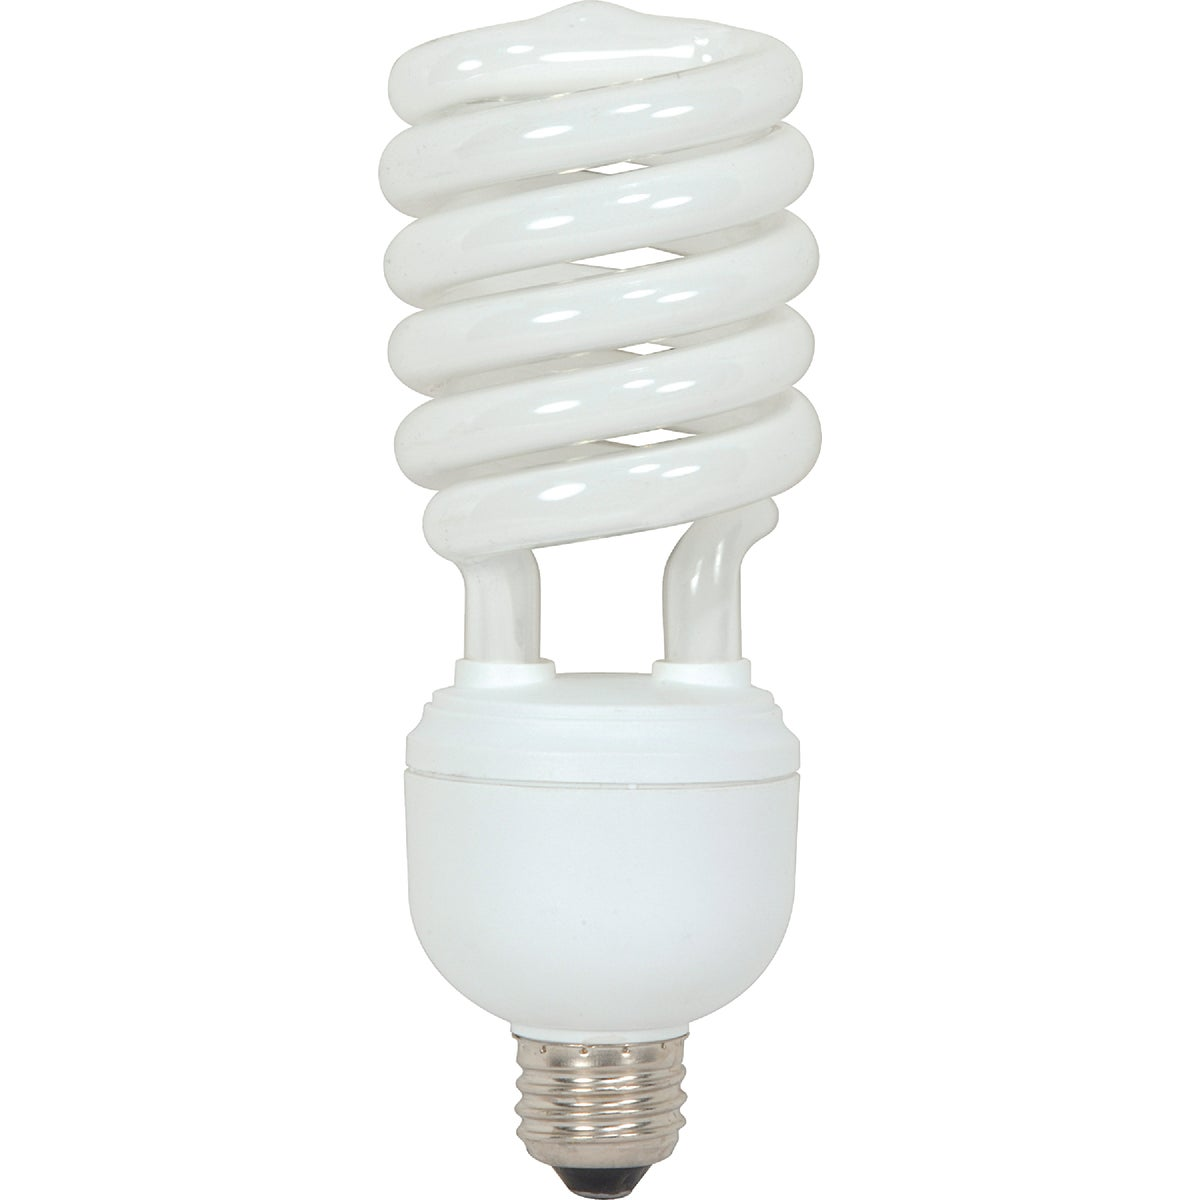 42W T3 SPIRAL CFL BULB - 97728 by G E Lighting